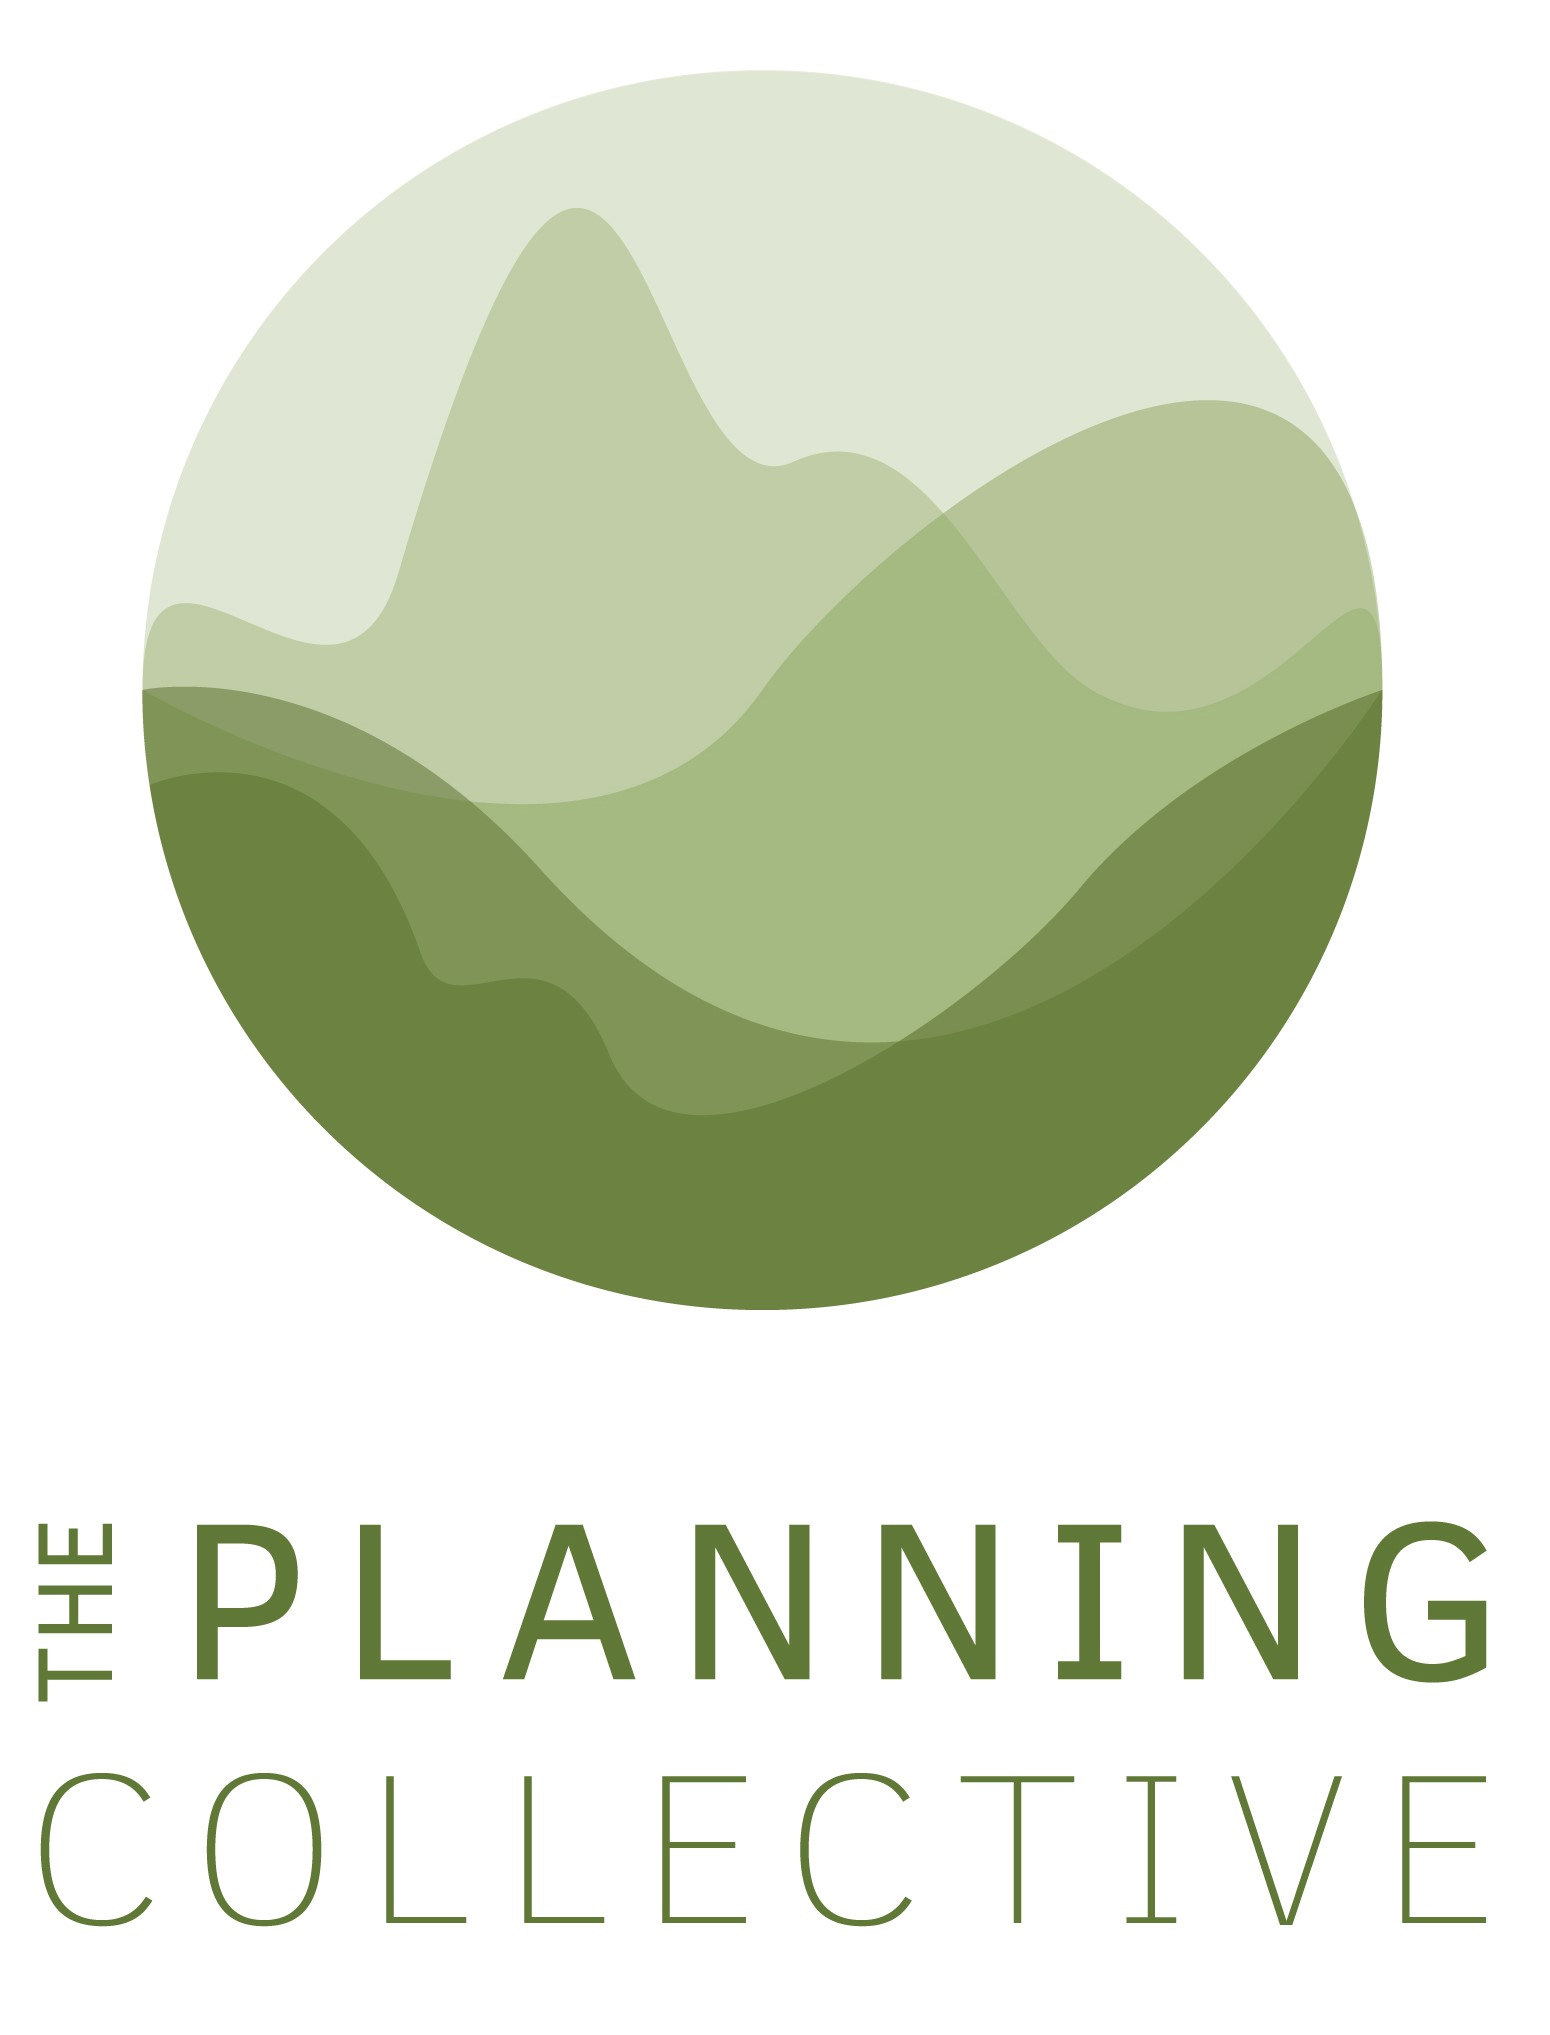 The Planning Collective